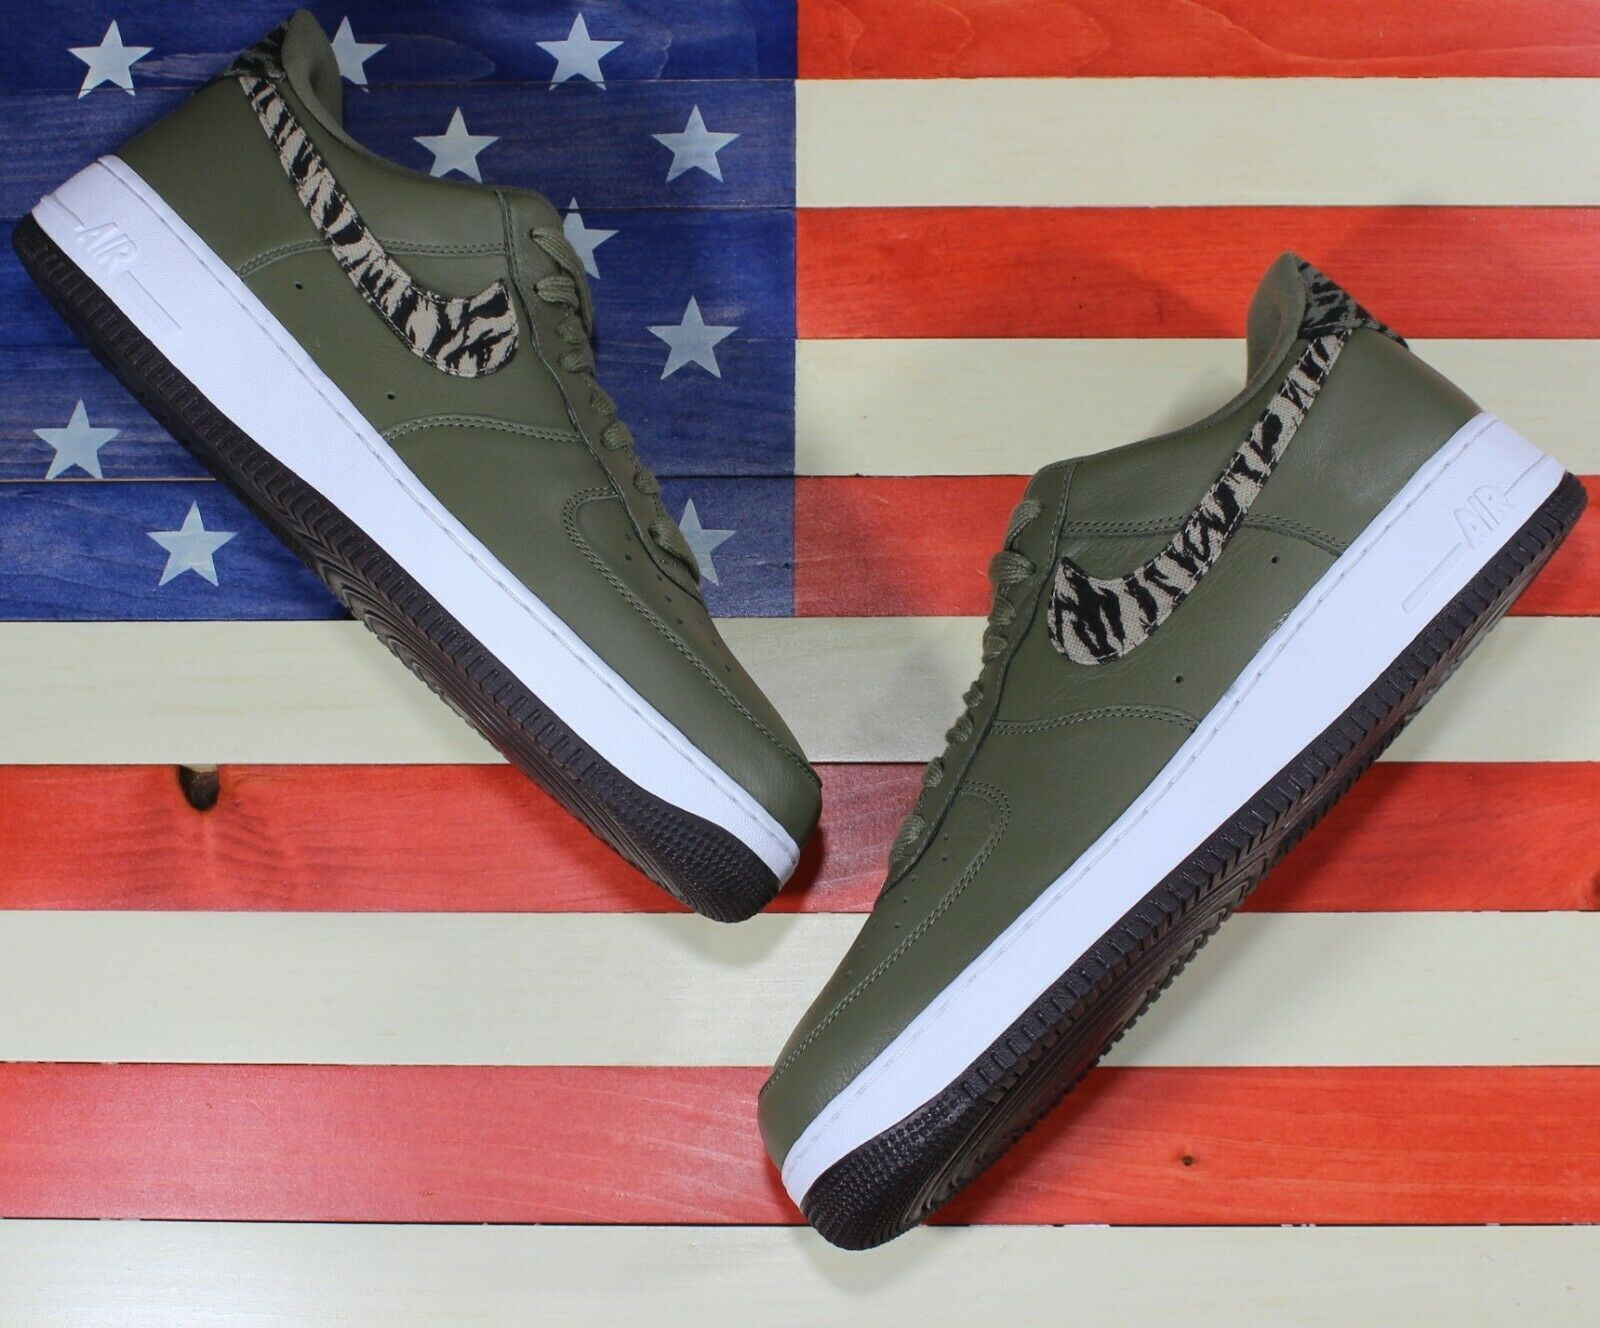 Nike Air Force 1 One Low AOP Basketball Shoes Olive-Green/White [AQ4131-200]- 13 image 6